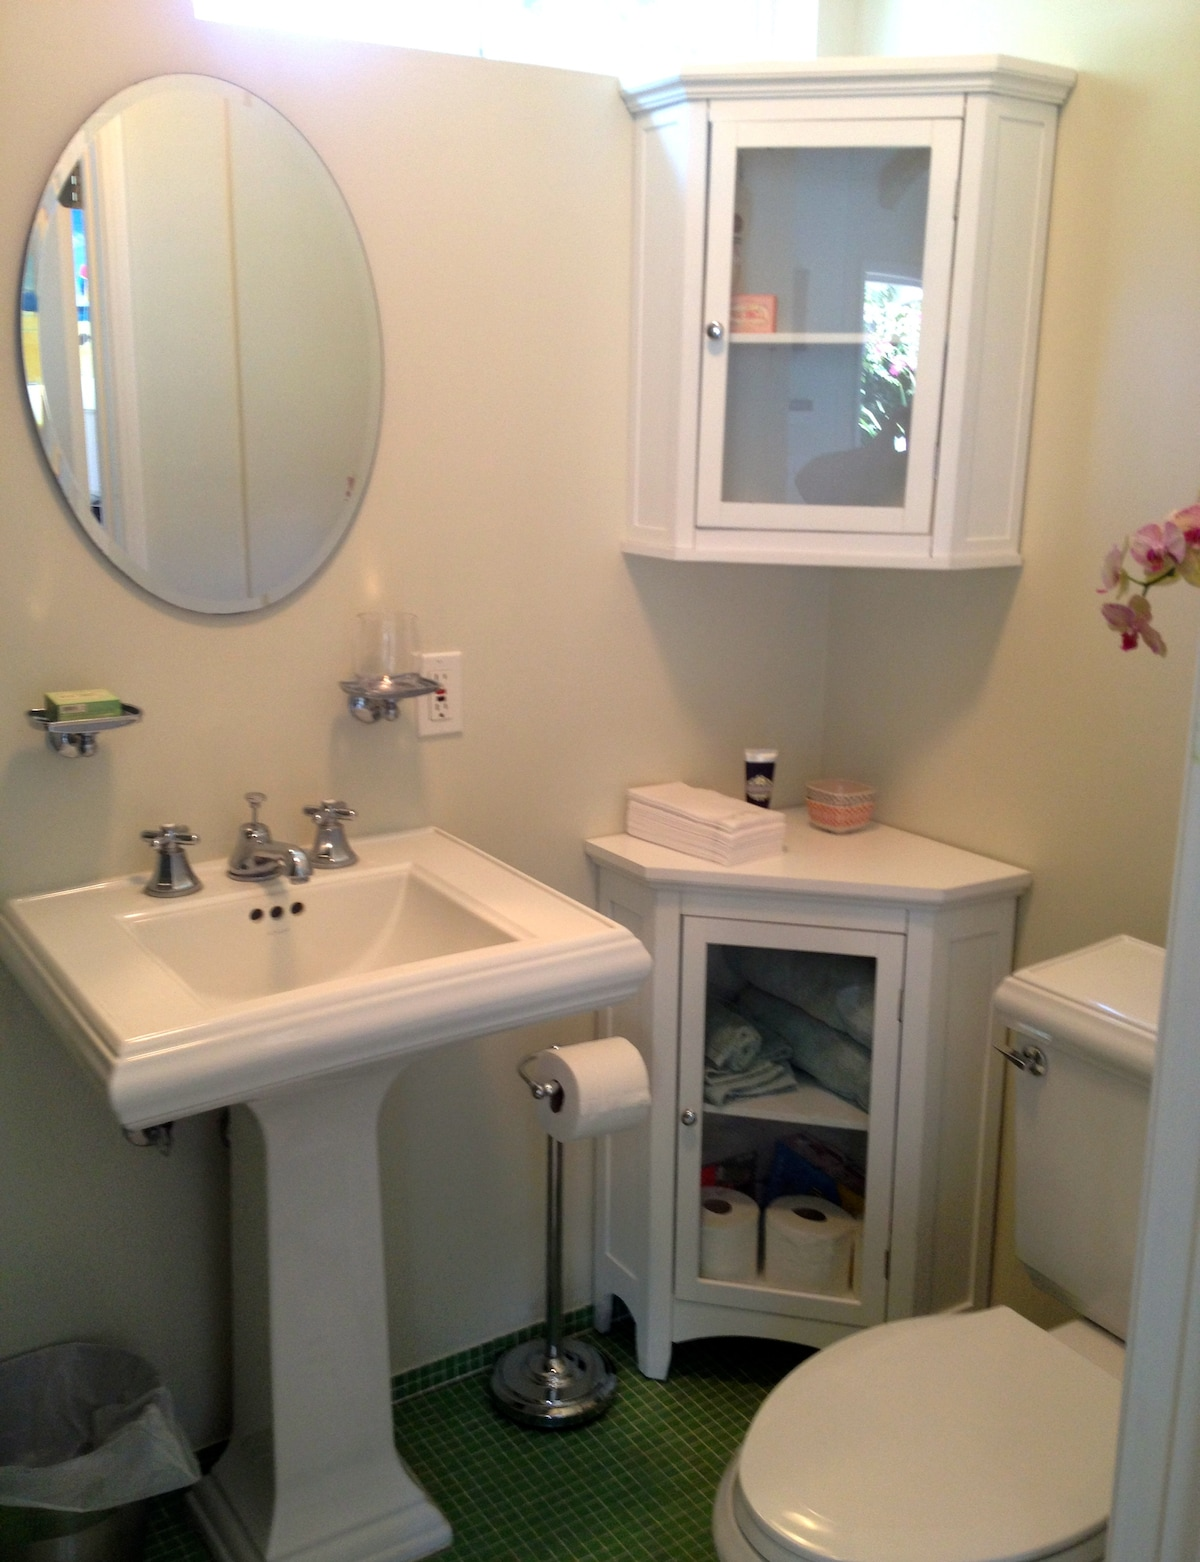 It's small but this 3/4 bath has all you need. Shower only.